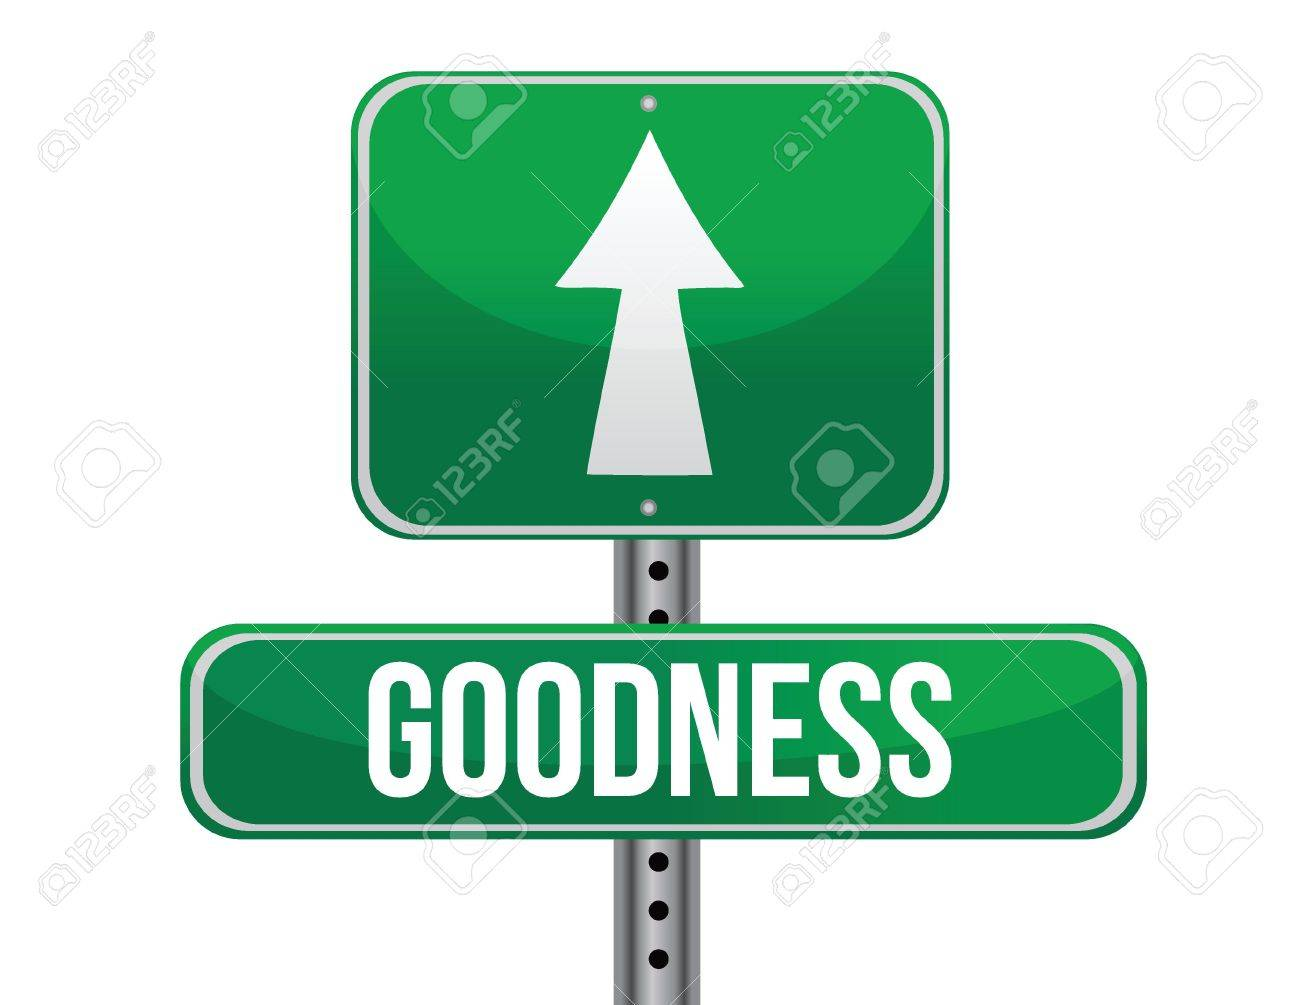 Goodness Cliparts Free Download Clip Art.